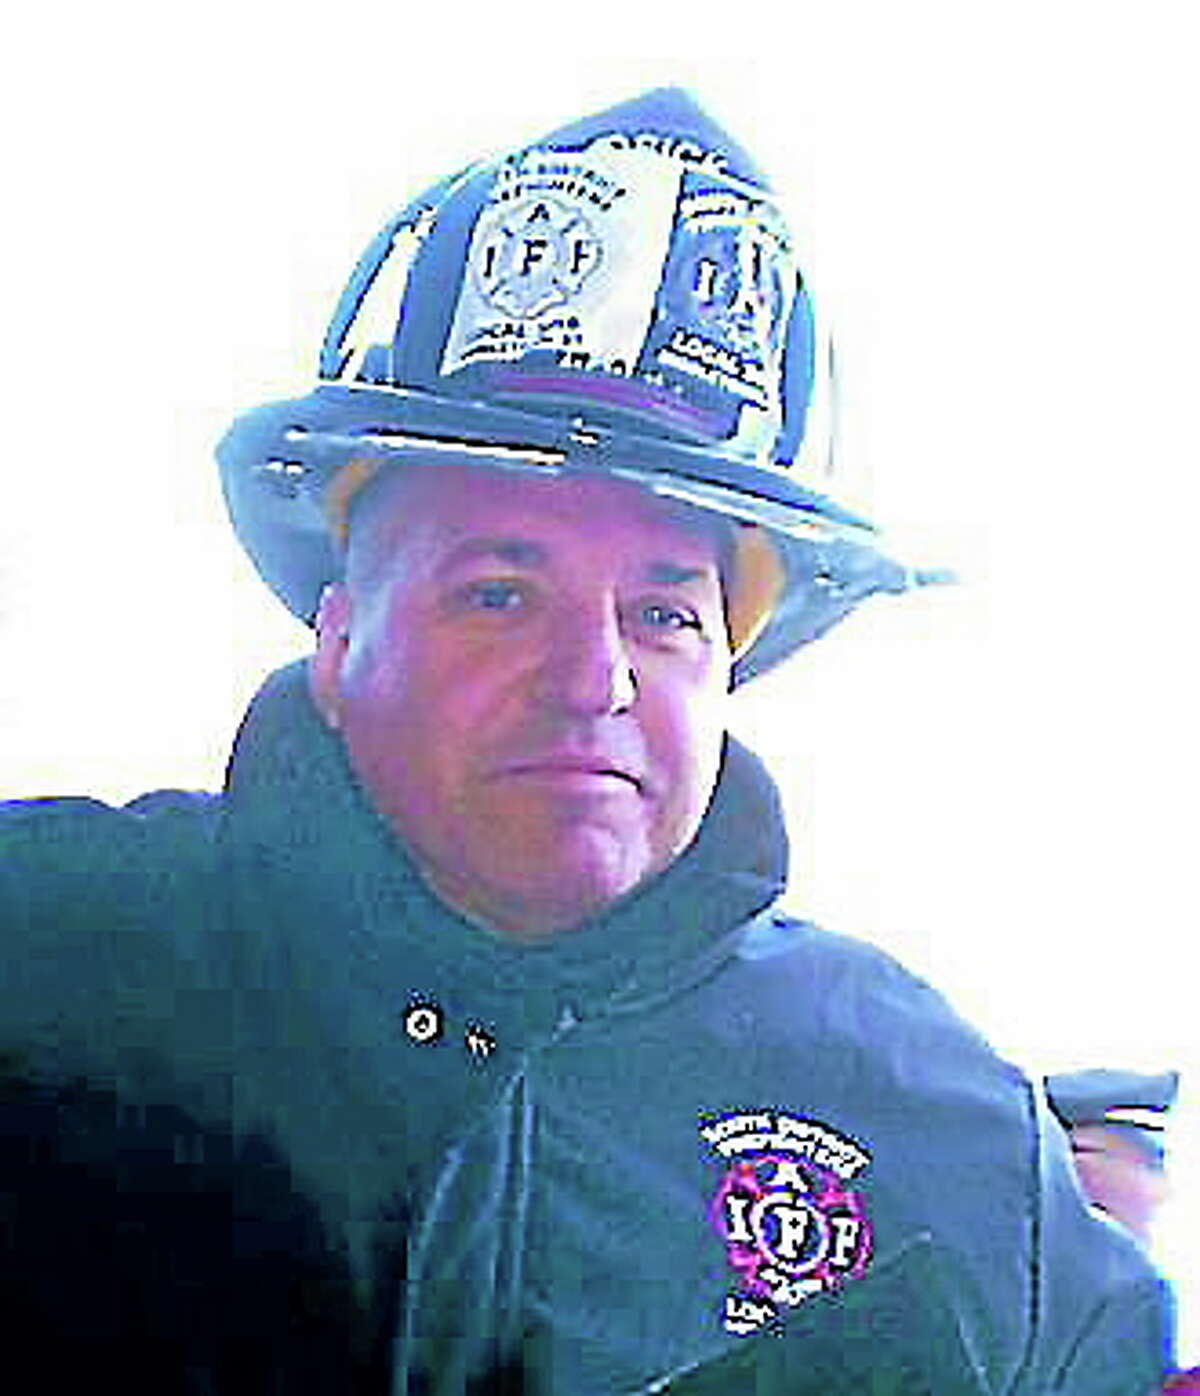 Middletown mourns the sudden passing of 25-year firefighter Michael Osiecki.